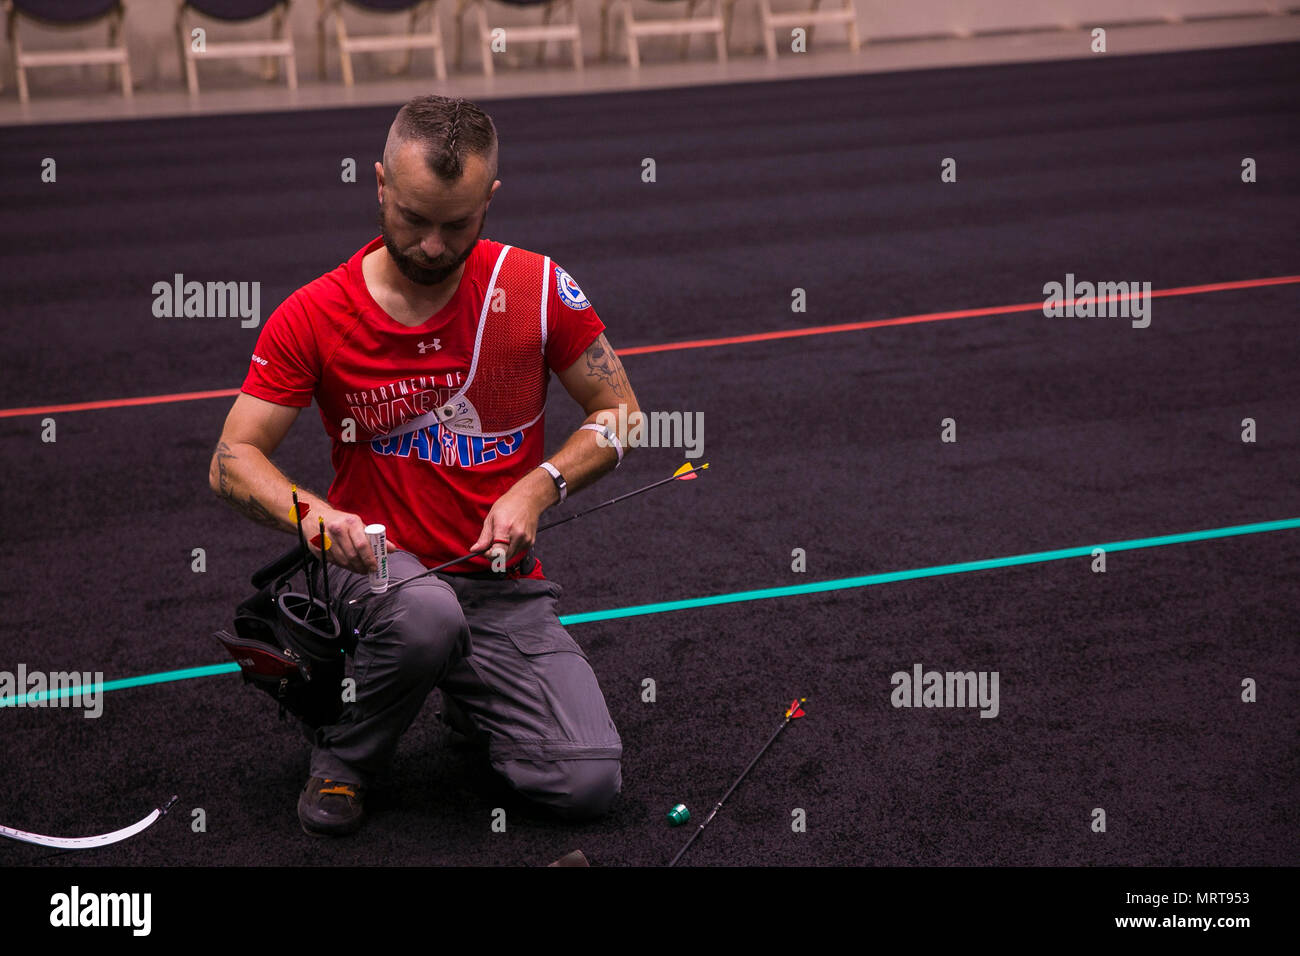 U.S. Marine Corps veteran Matthew Francis waxes his arrow during archery practice at the 2017 DoD Warrior Games at McCormick Place in Chicago, June 29, 2017. Francis, a native of Danville, Va., is a member of 2017 DoD Warrior Games Team Marine Corps. The DoD Warrior Games is an adaptive sports competition for wounded, ill and injured service members and veterans. (U.S. Marine Corps photo by Lance Cpl. Juan Madrigal) - Stock Image